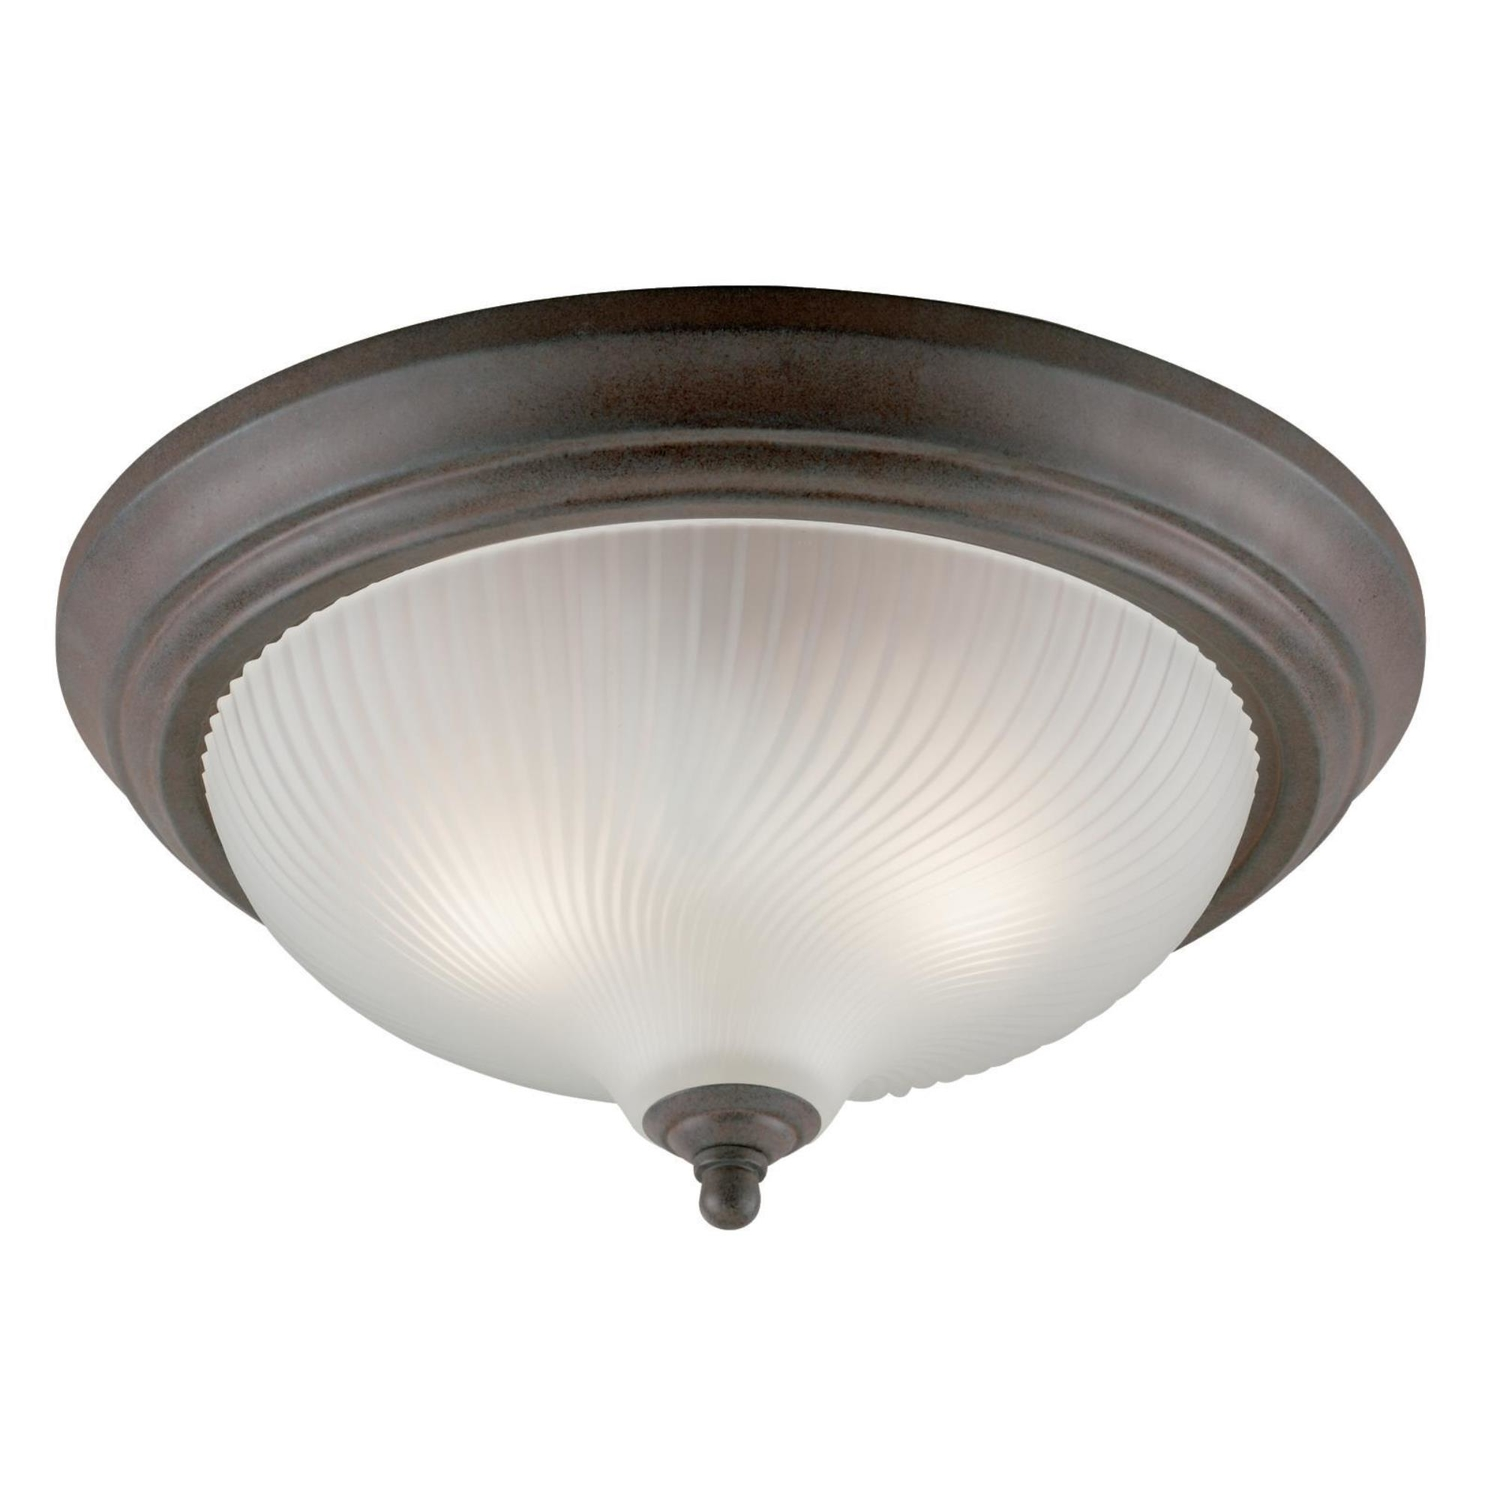 Westinghouse  13 in. L x 13 in. W Ceiling Light